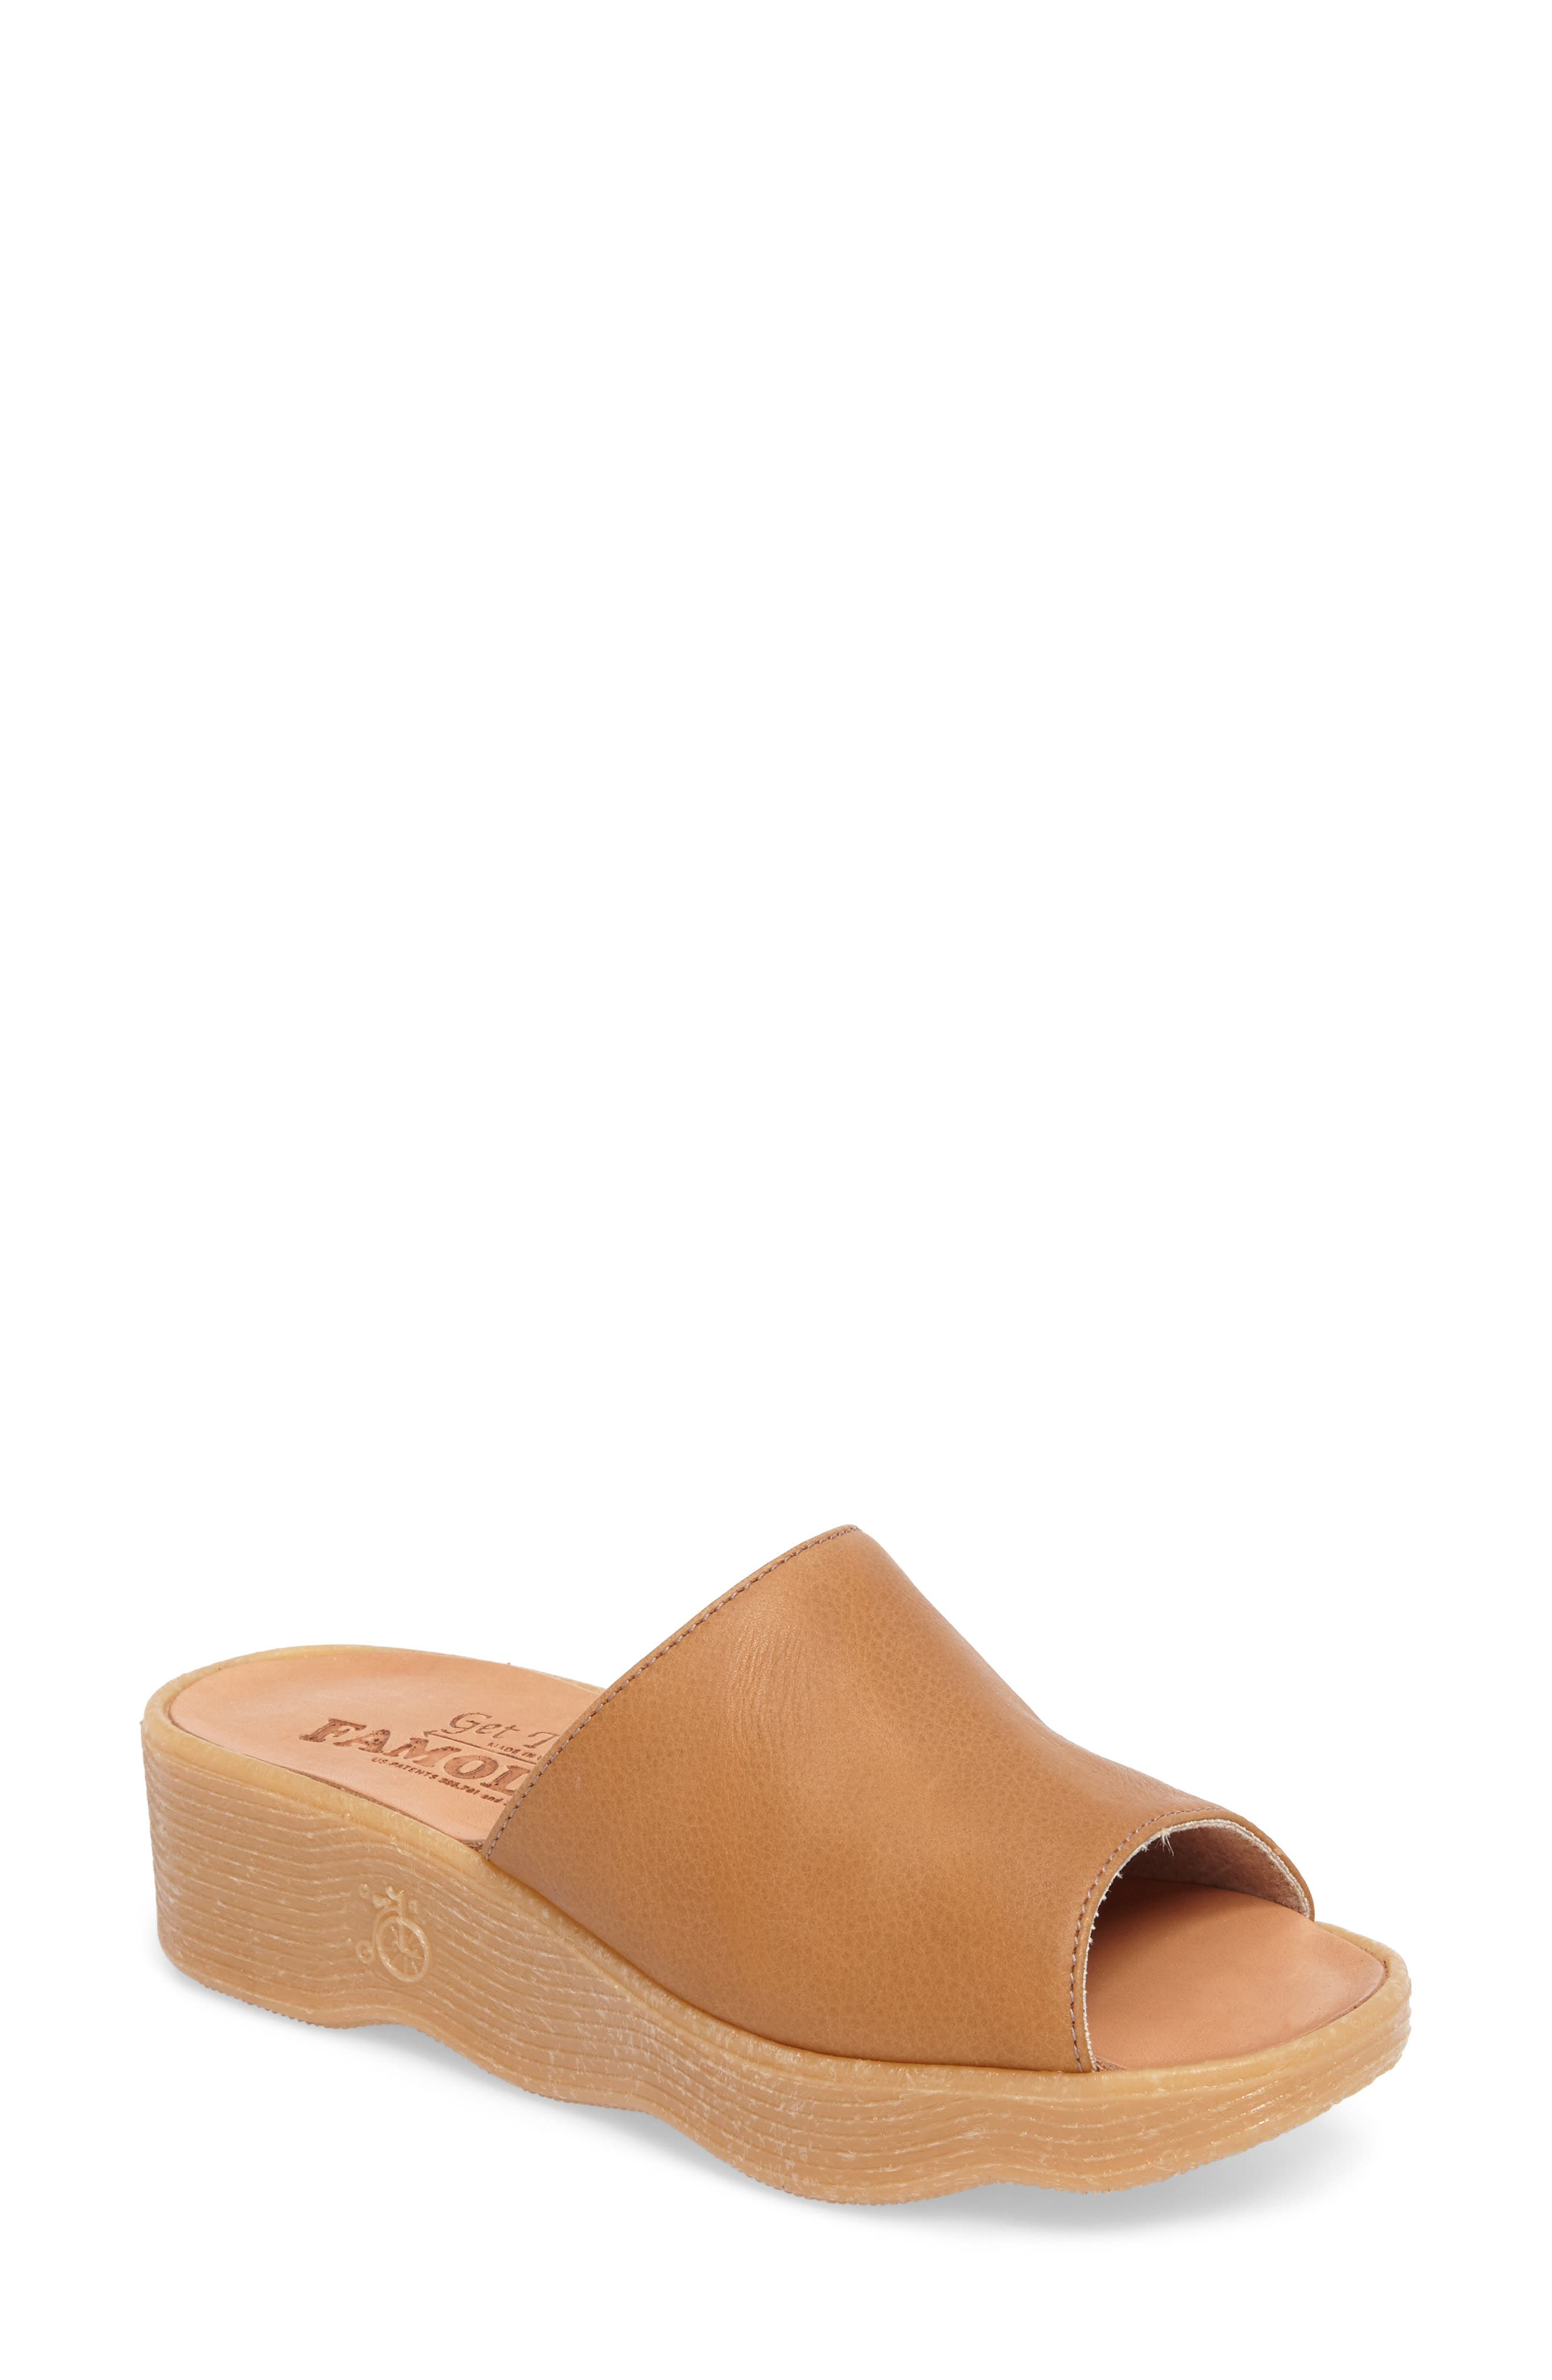 Slide N Sleek Wedge Slide Sandal,                             Main thumbnail 1, color,                             COGNAC LEATHER